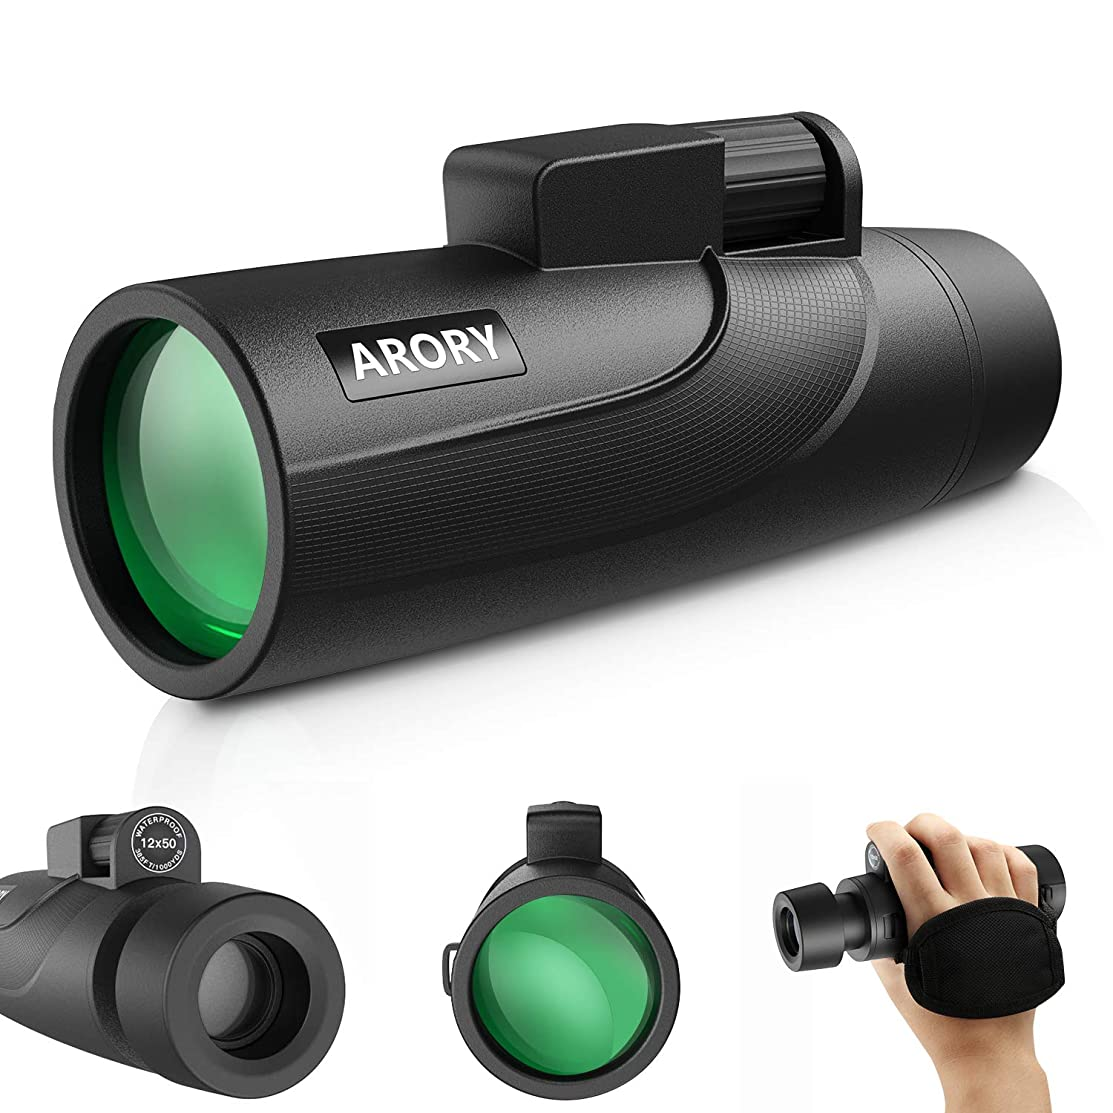 Monocular Telescope 12X50 High Power,ARORY HD Lightweight Monocular(0.58LB),Compact Zomm Monocular Scope,BAK4 Prism Fully Coated Optical Lens Single Hand Focus, Great for Camping/Travel/Outdoor Sports